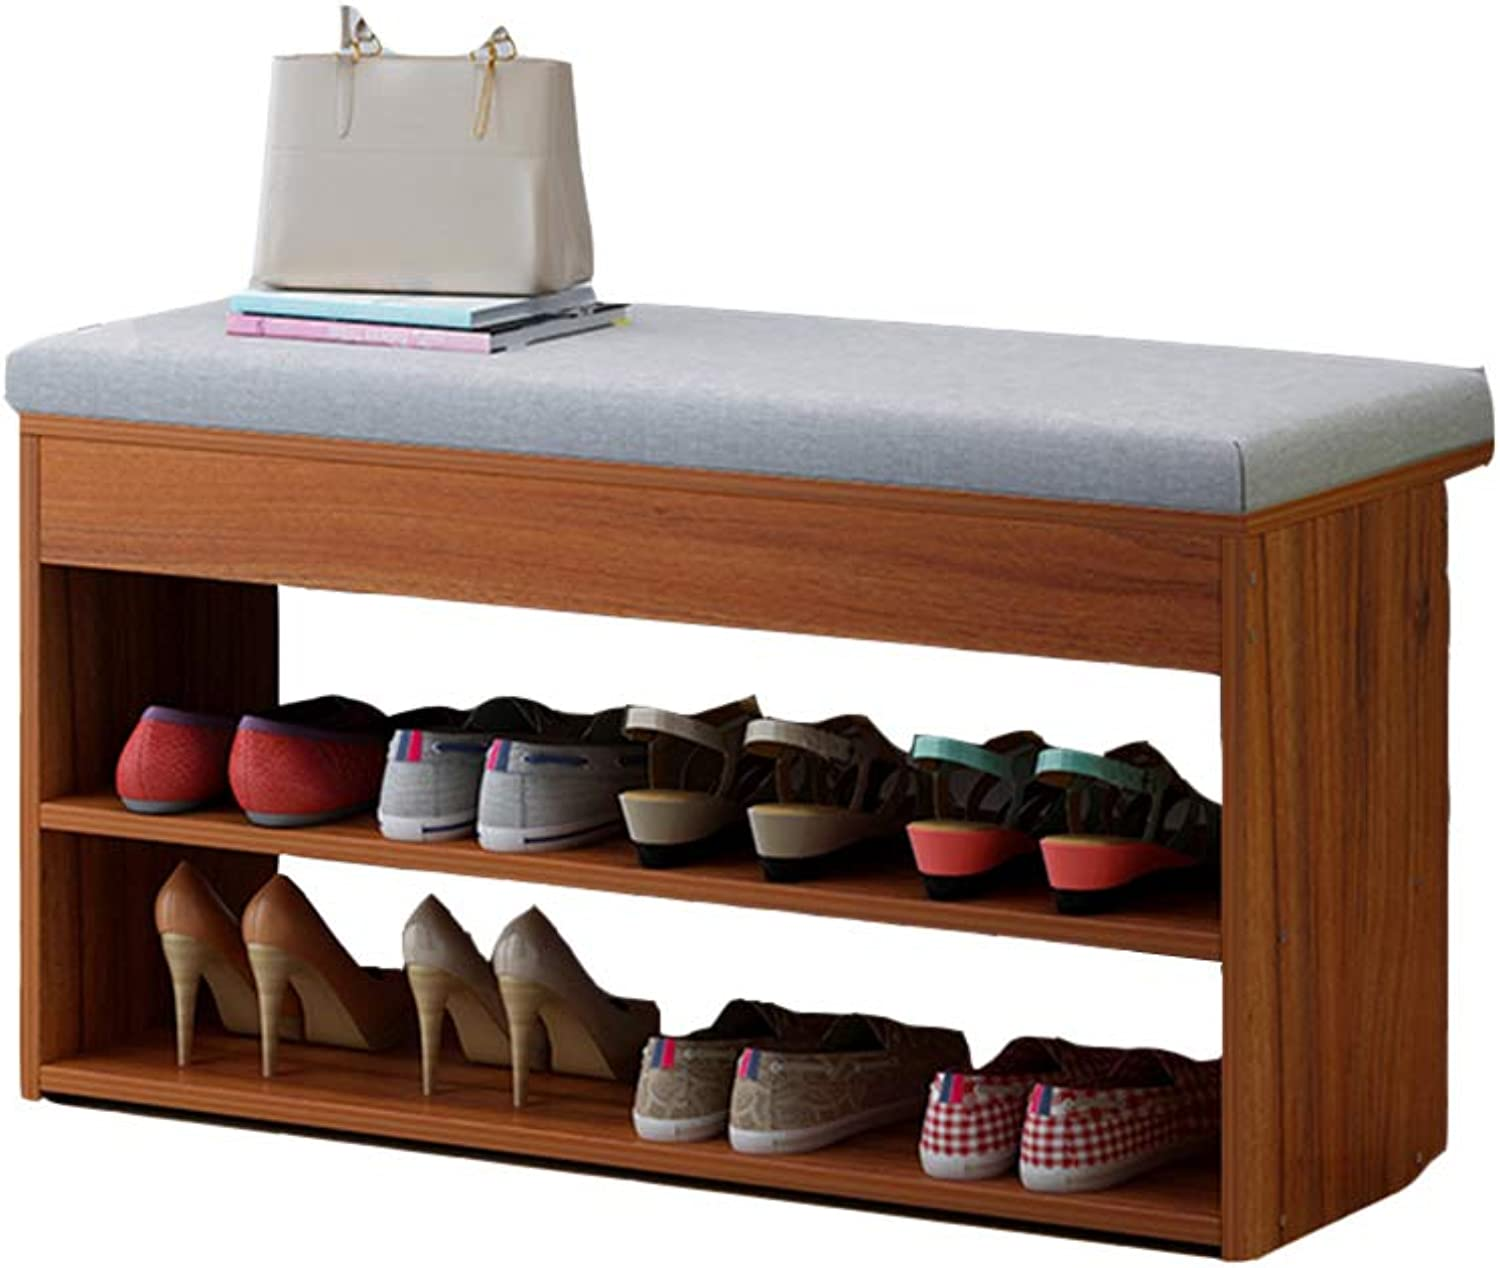 YNN shoes Bench shoes Rack with Seat Cushion Storage Bench for Living Room Hallway Entryway 80 X 30 X 42 cm (W X D X H) 3 colors (color   Walnut color)